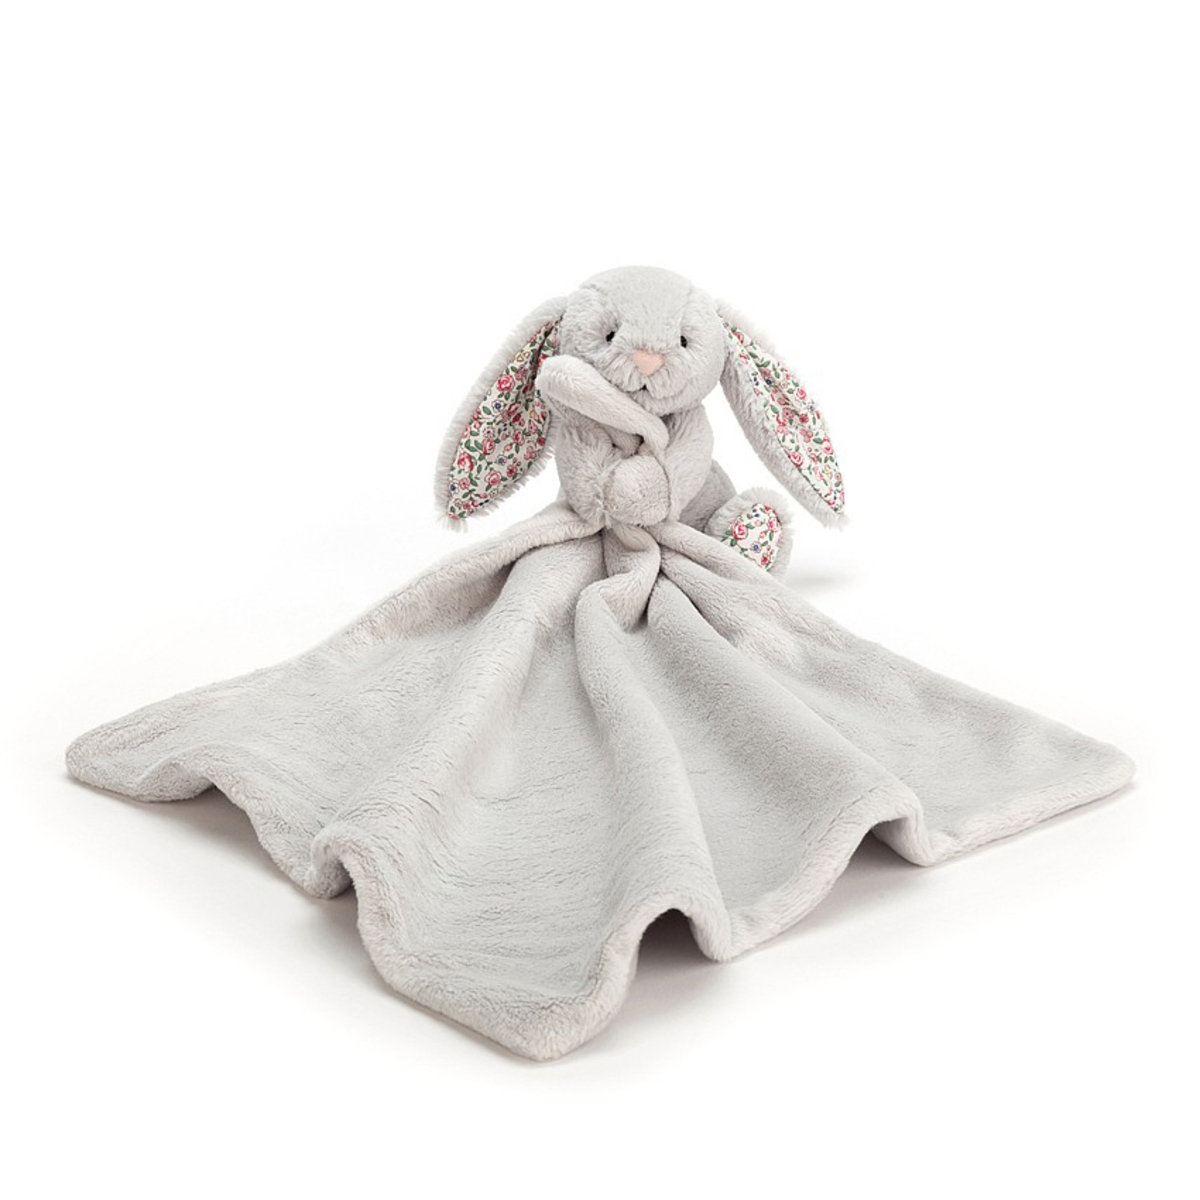 Doudou Blossom Silver Bunny Soother Blossom Silver Bunny Soother